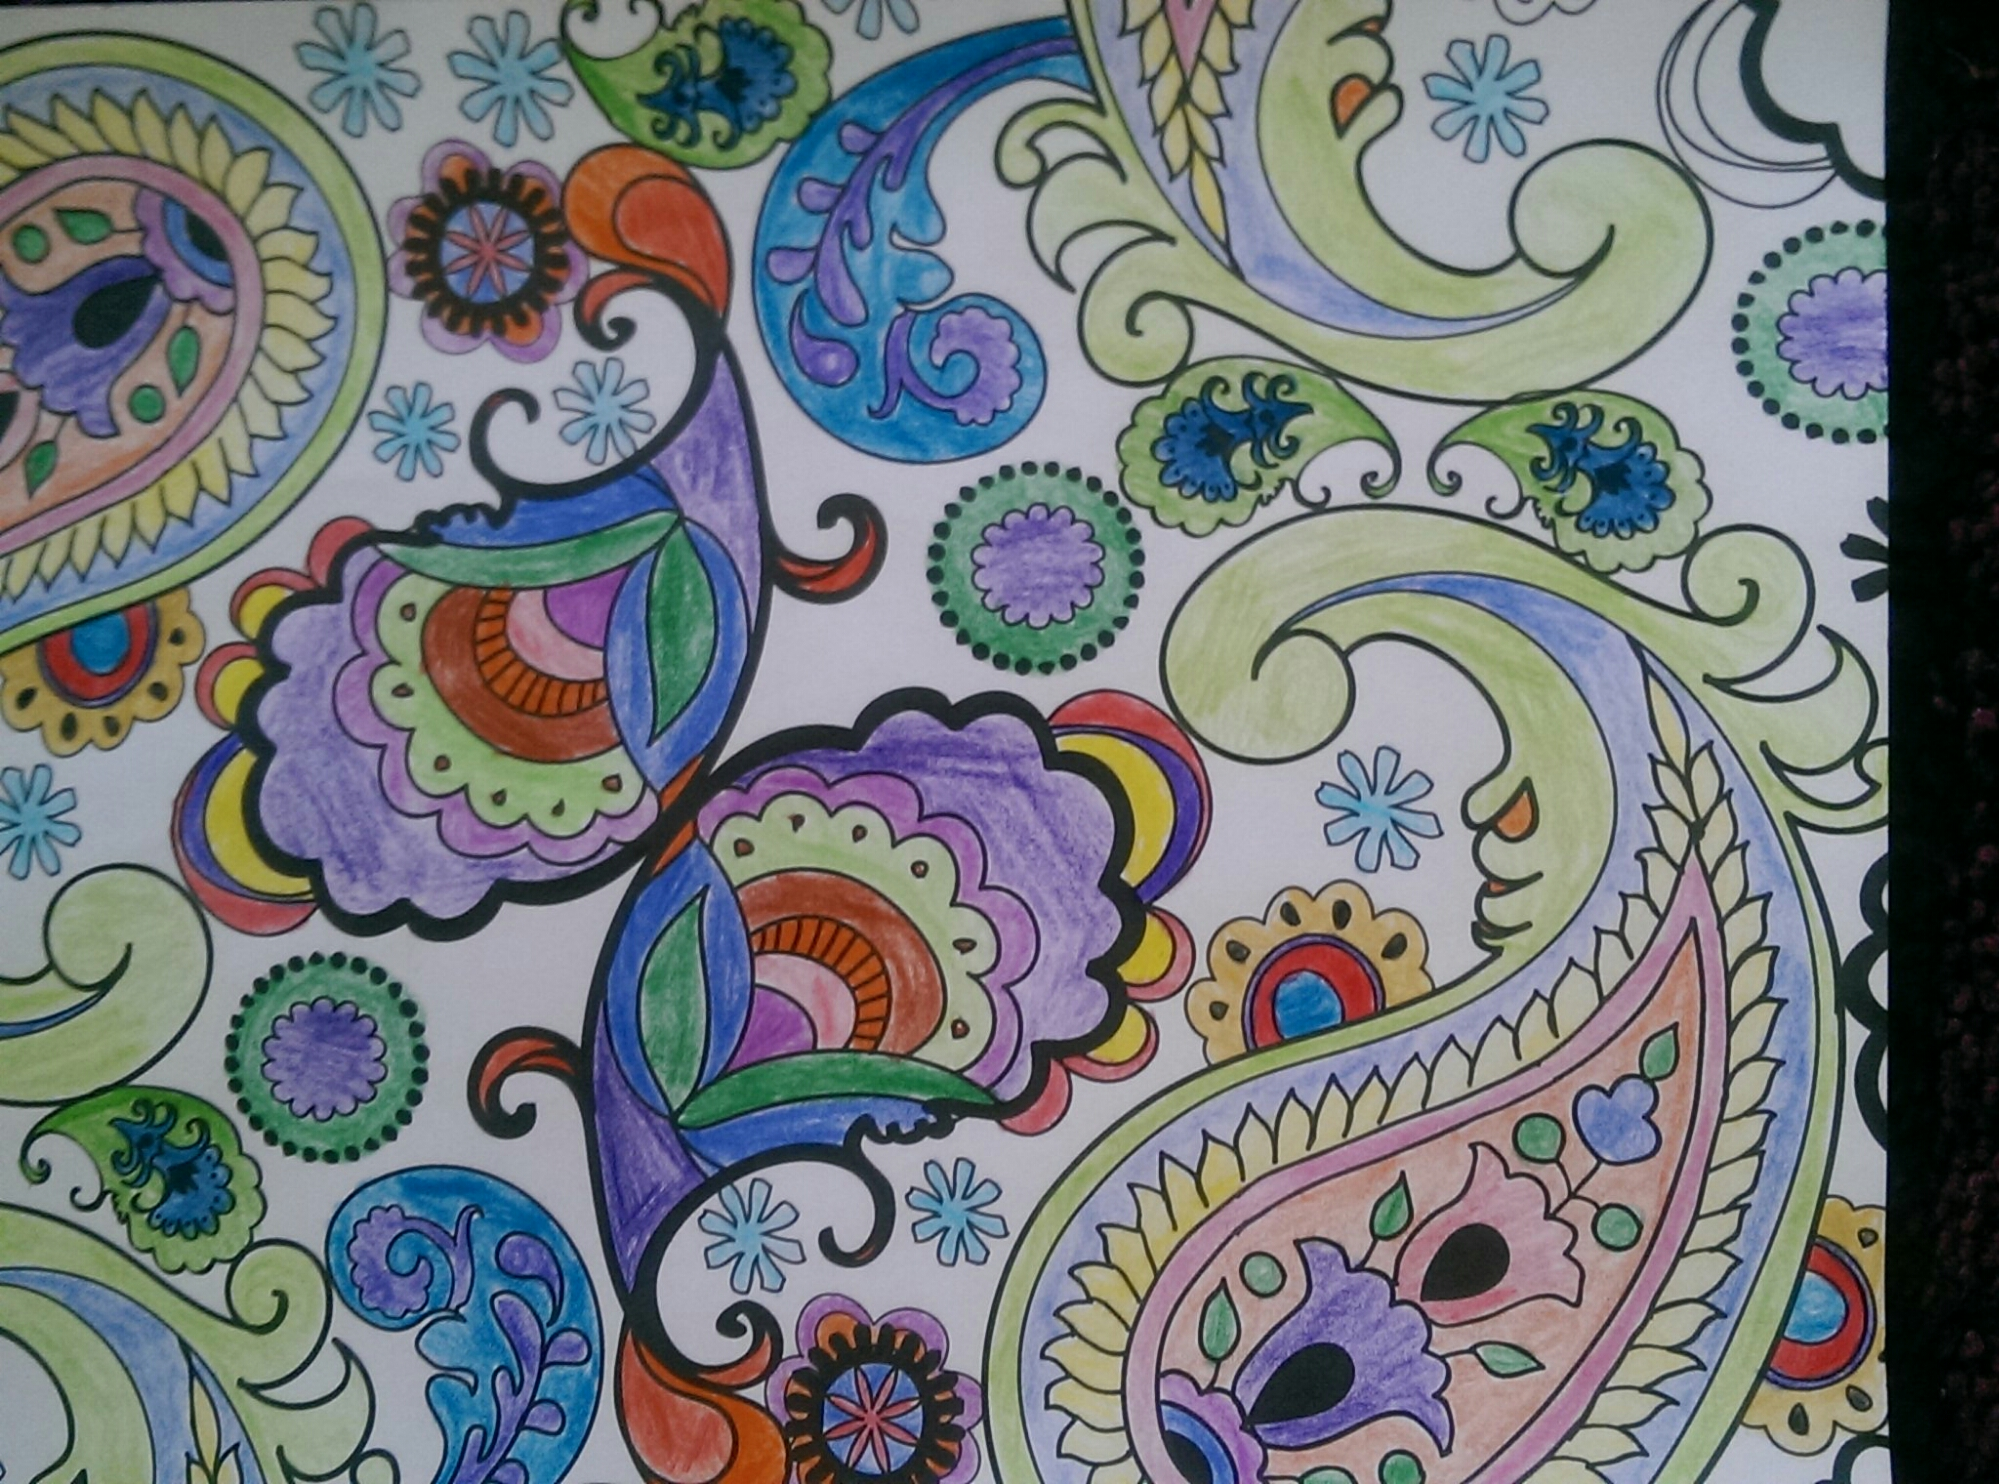 The coloring book of mindfulness - Image